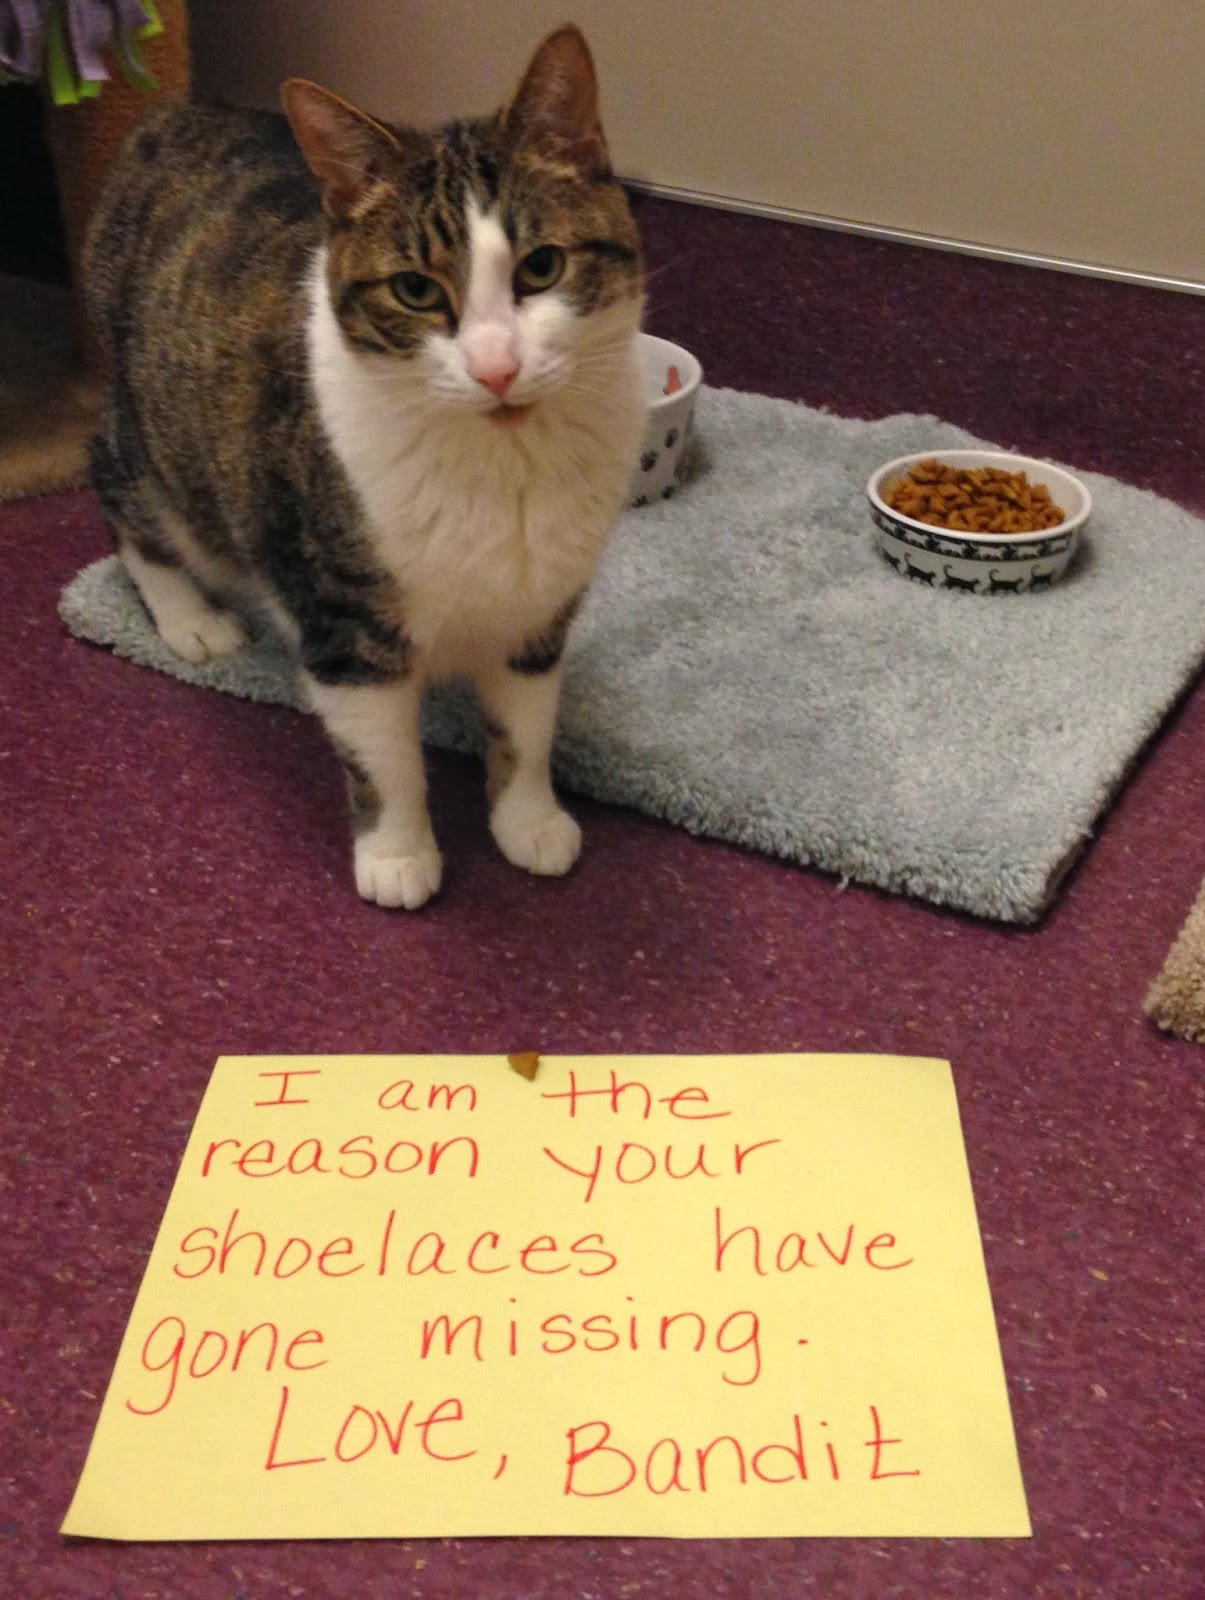 http://hssvacc.blogspot.com.au/2014/01/cat-shaming-hssv-edition.html